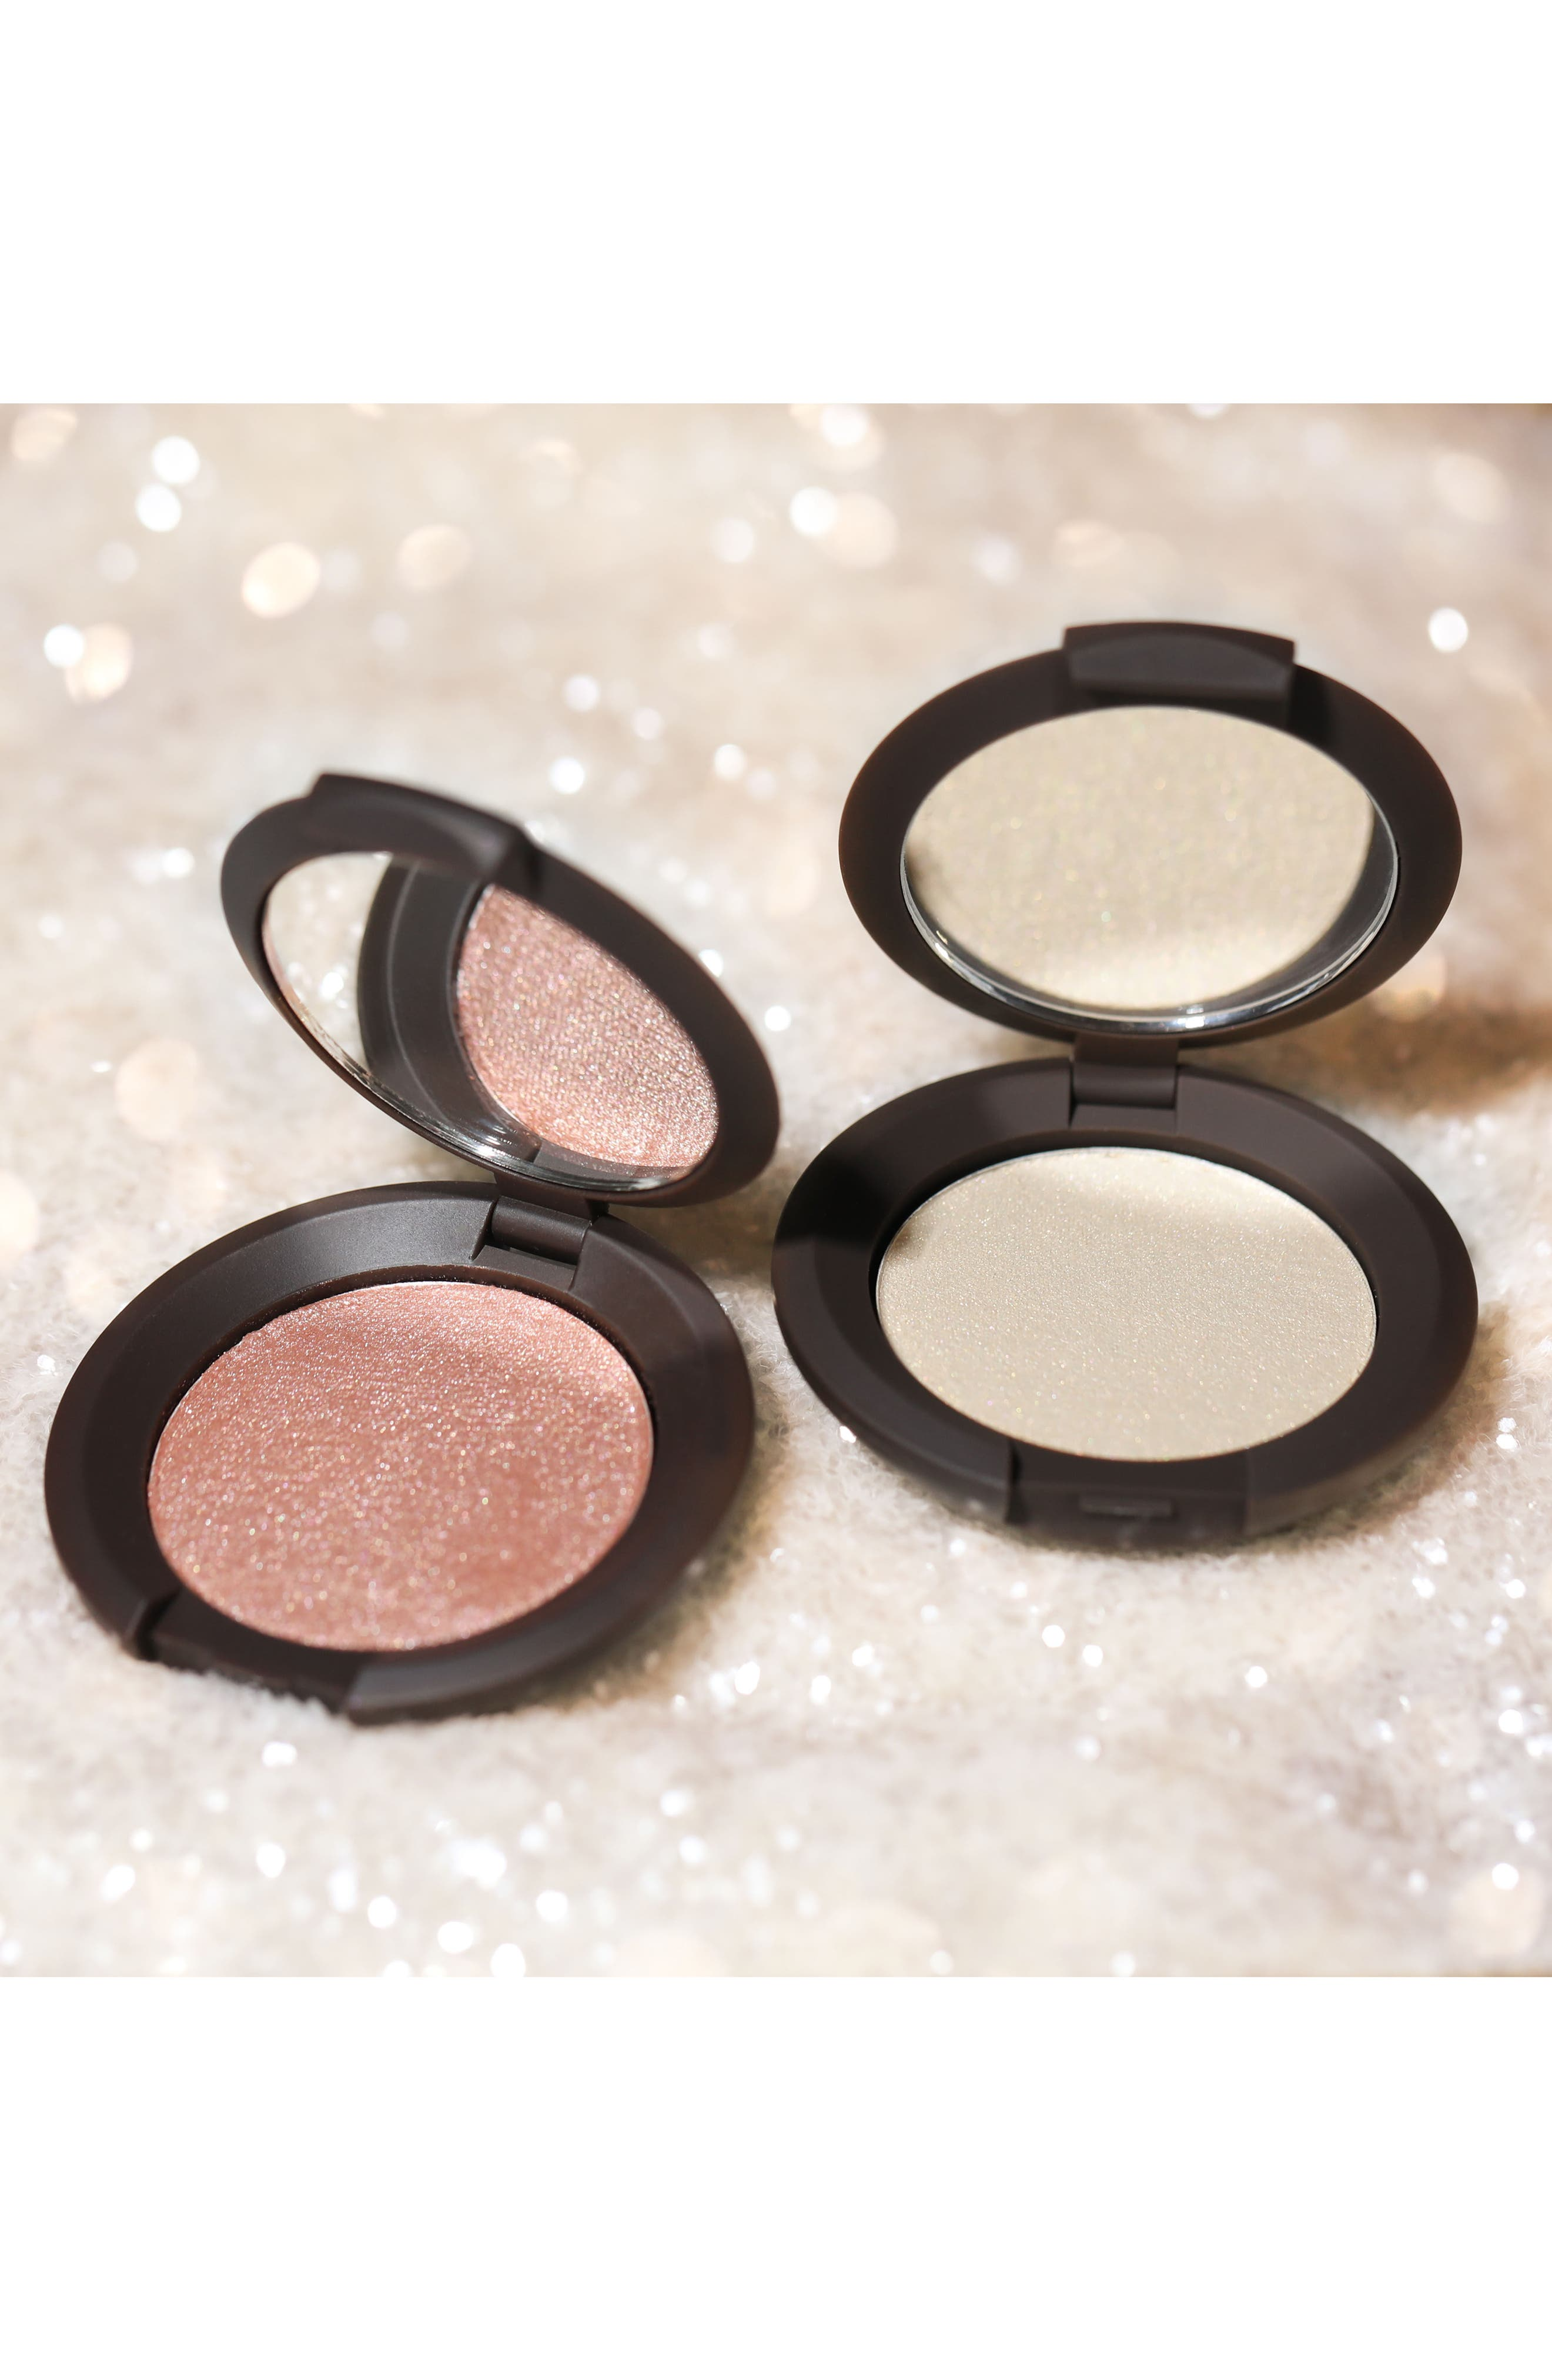 BECCA Shimmering Skin Perfector Pressed Highlighter,                             Alternate thumbnail 10, color,                             PEARL